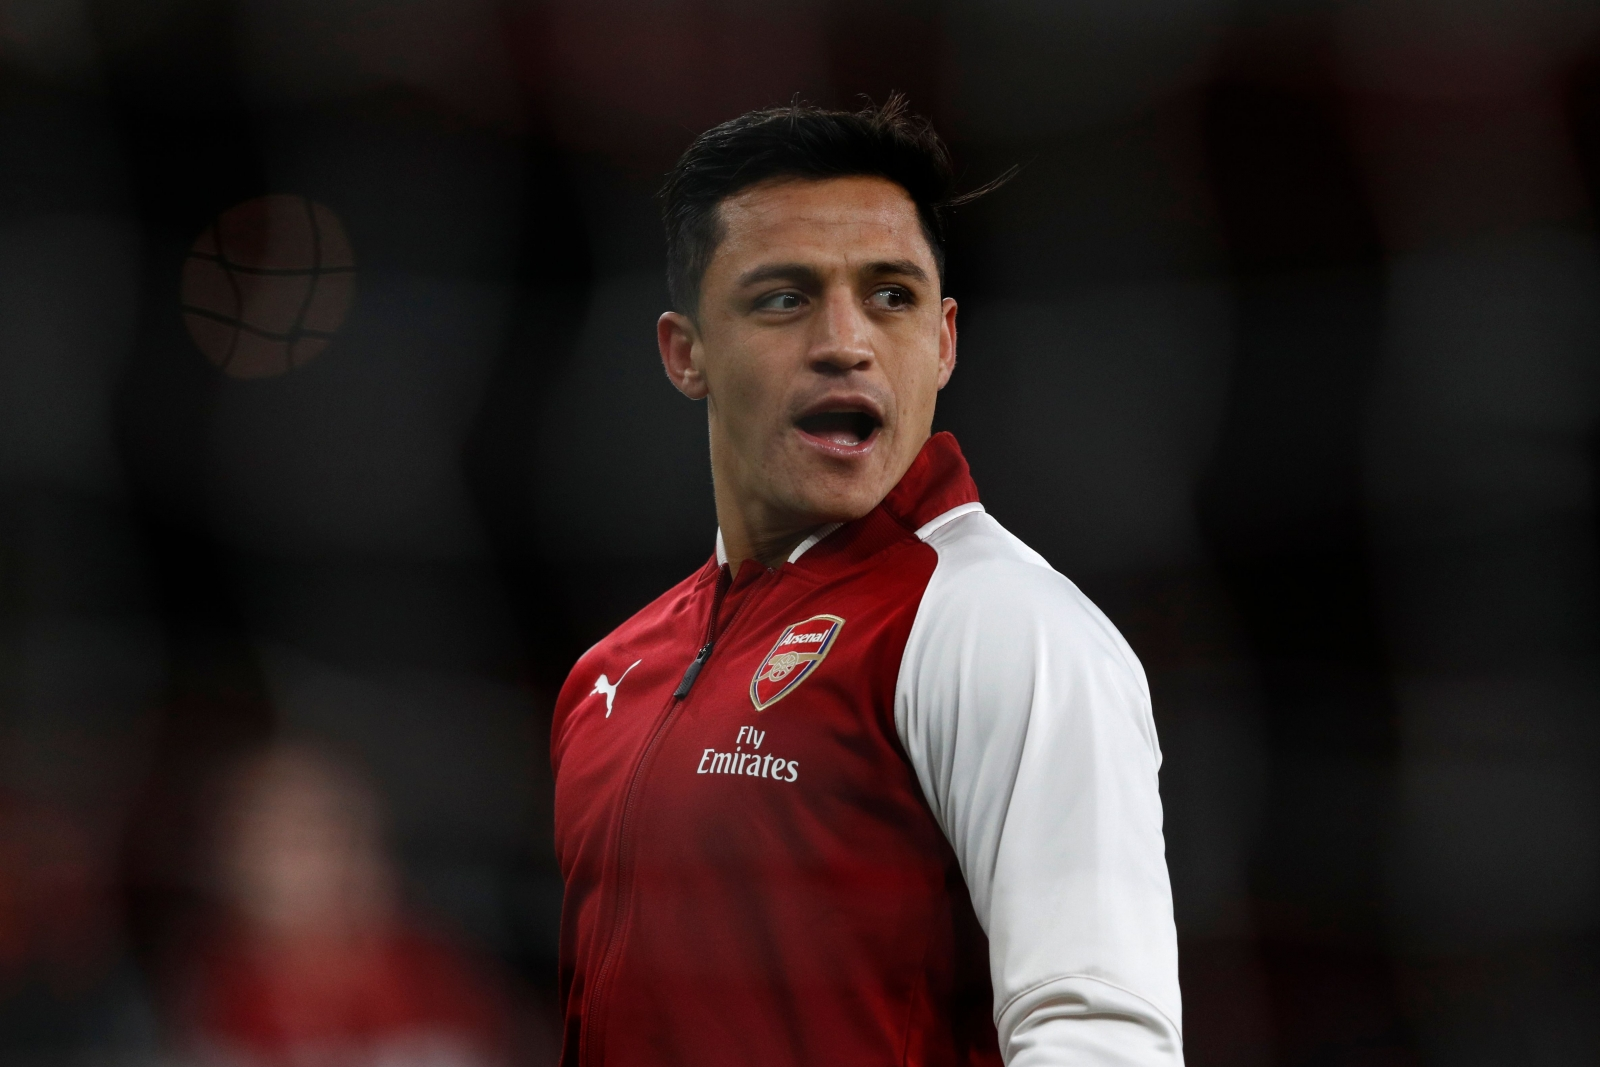 sanchez dating Alexis sanchez and girlfriend, mayte rodriguez going strong after overcoming few hurdles in their relationships sanchez may have found his future wife and hopefully, we will get to hear about their wedding day soon.